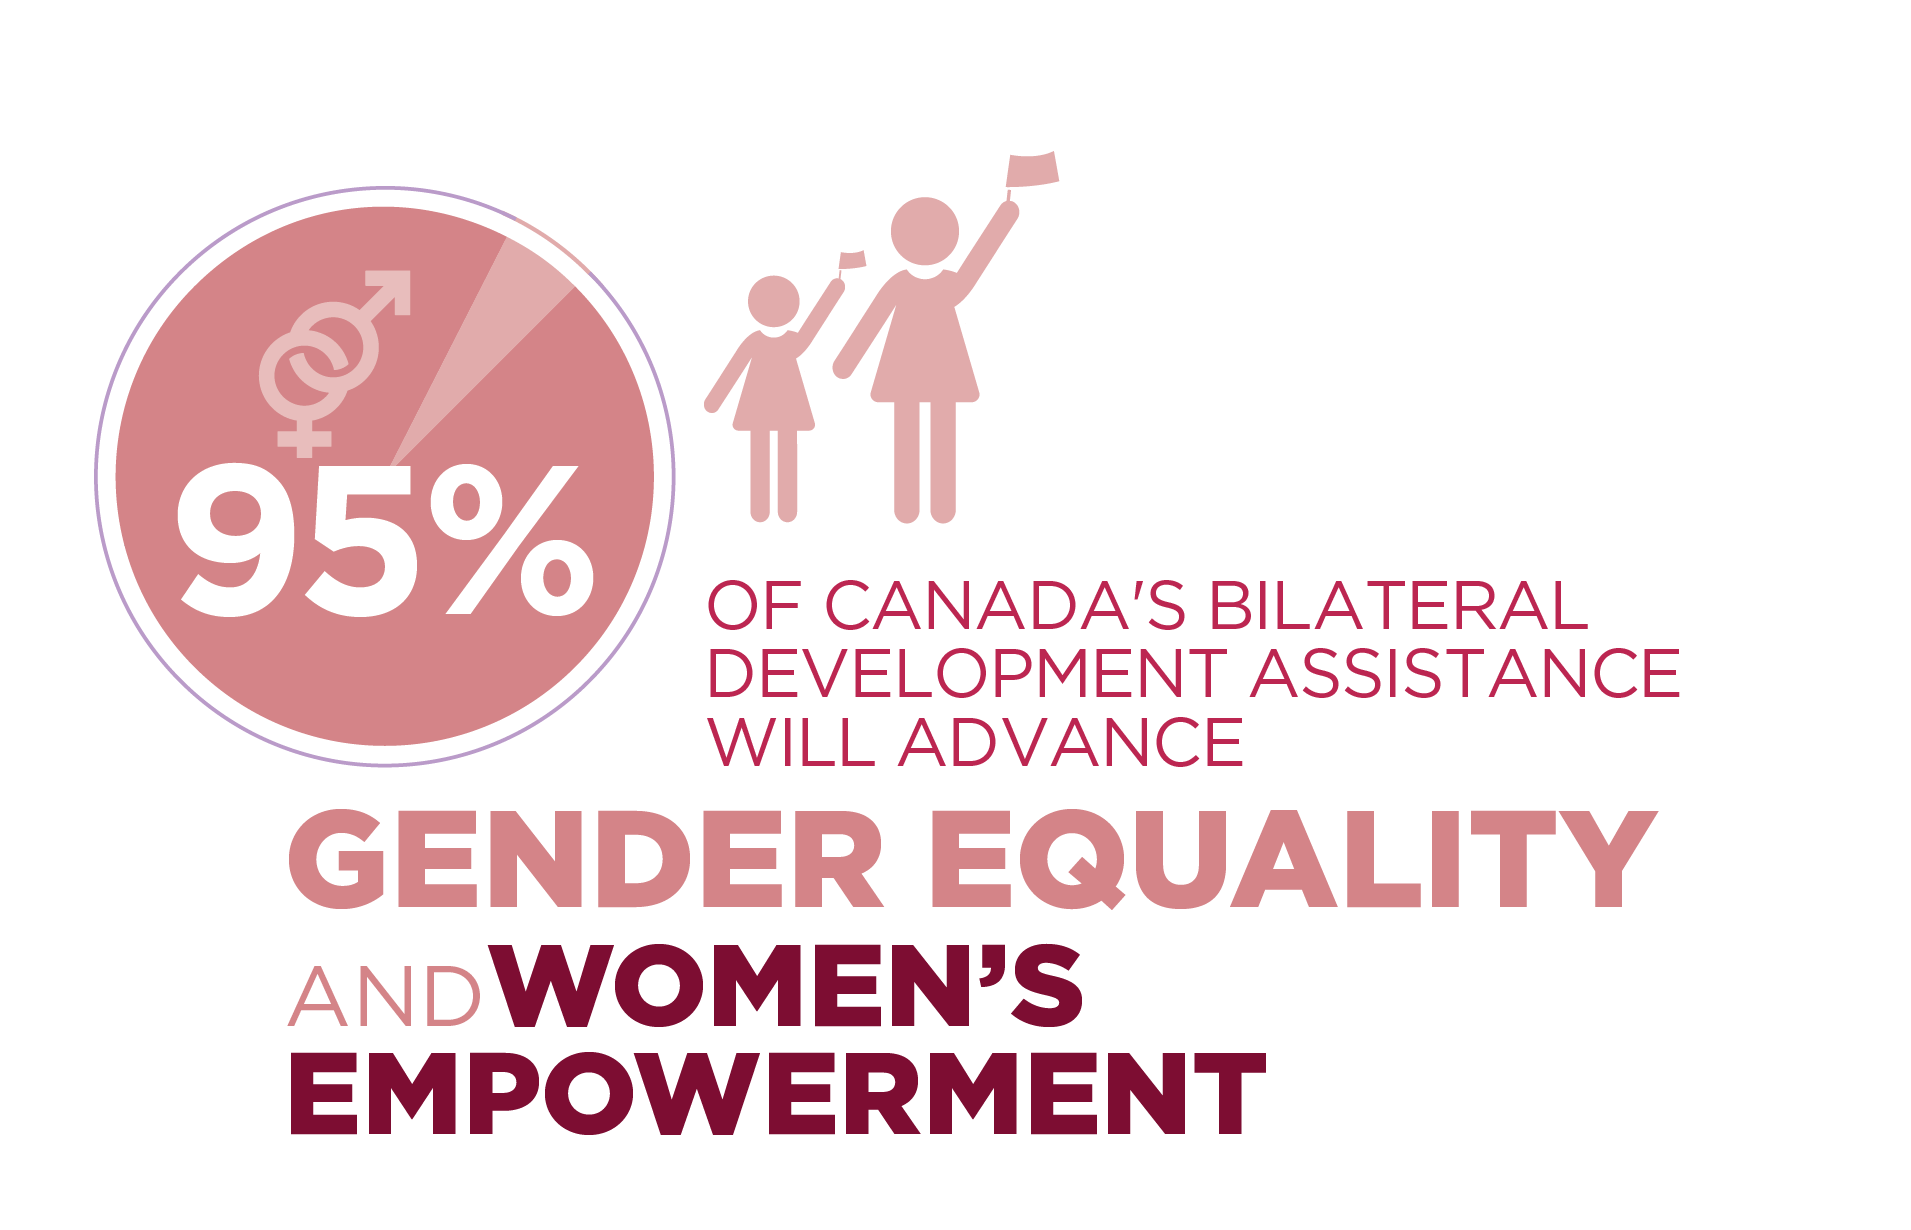 95% of Canada's Assistance Program will advance gender equality and women's empowerment.